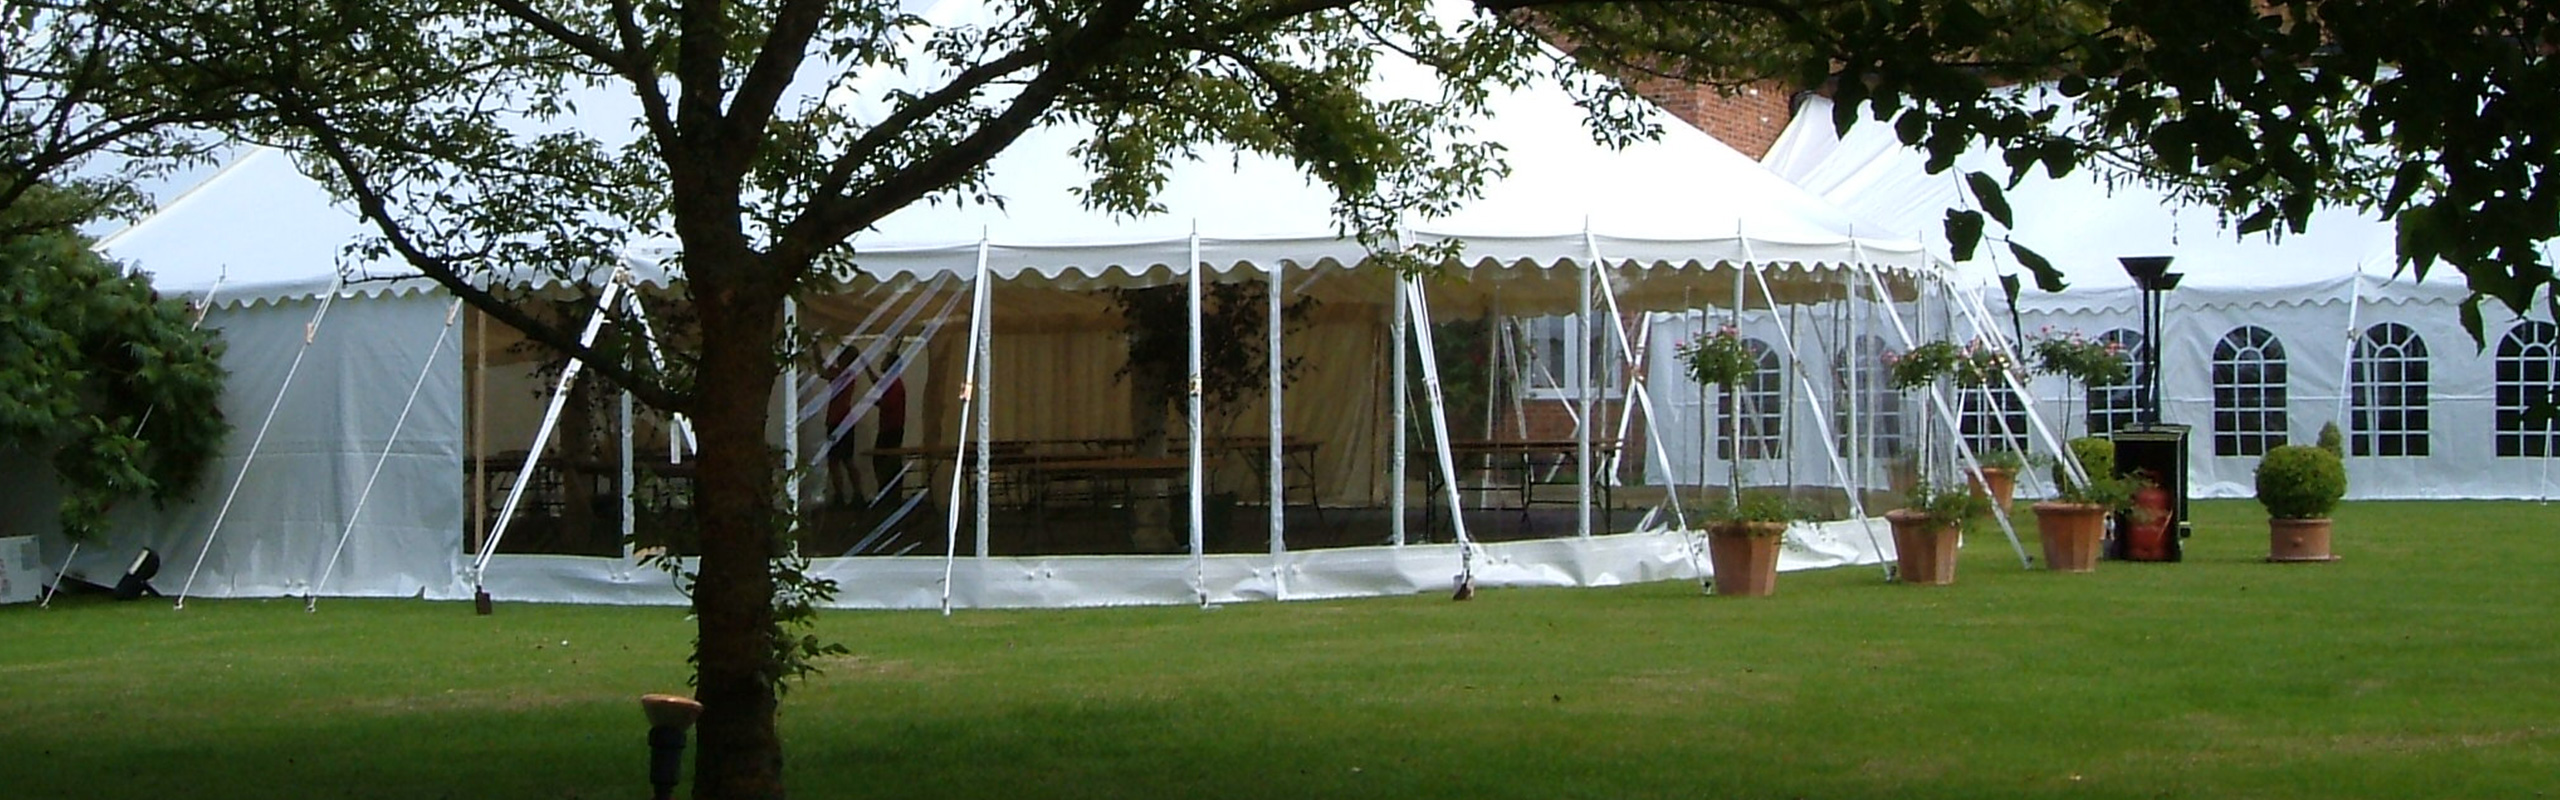 Weatherill Marquees